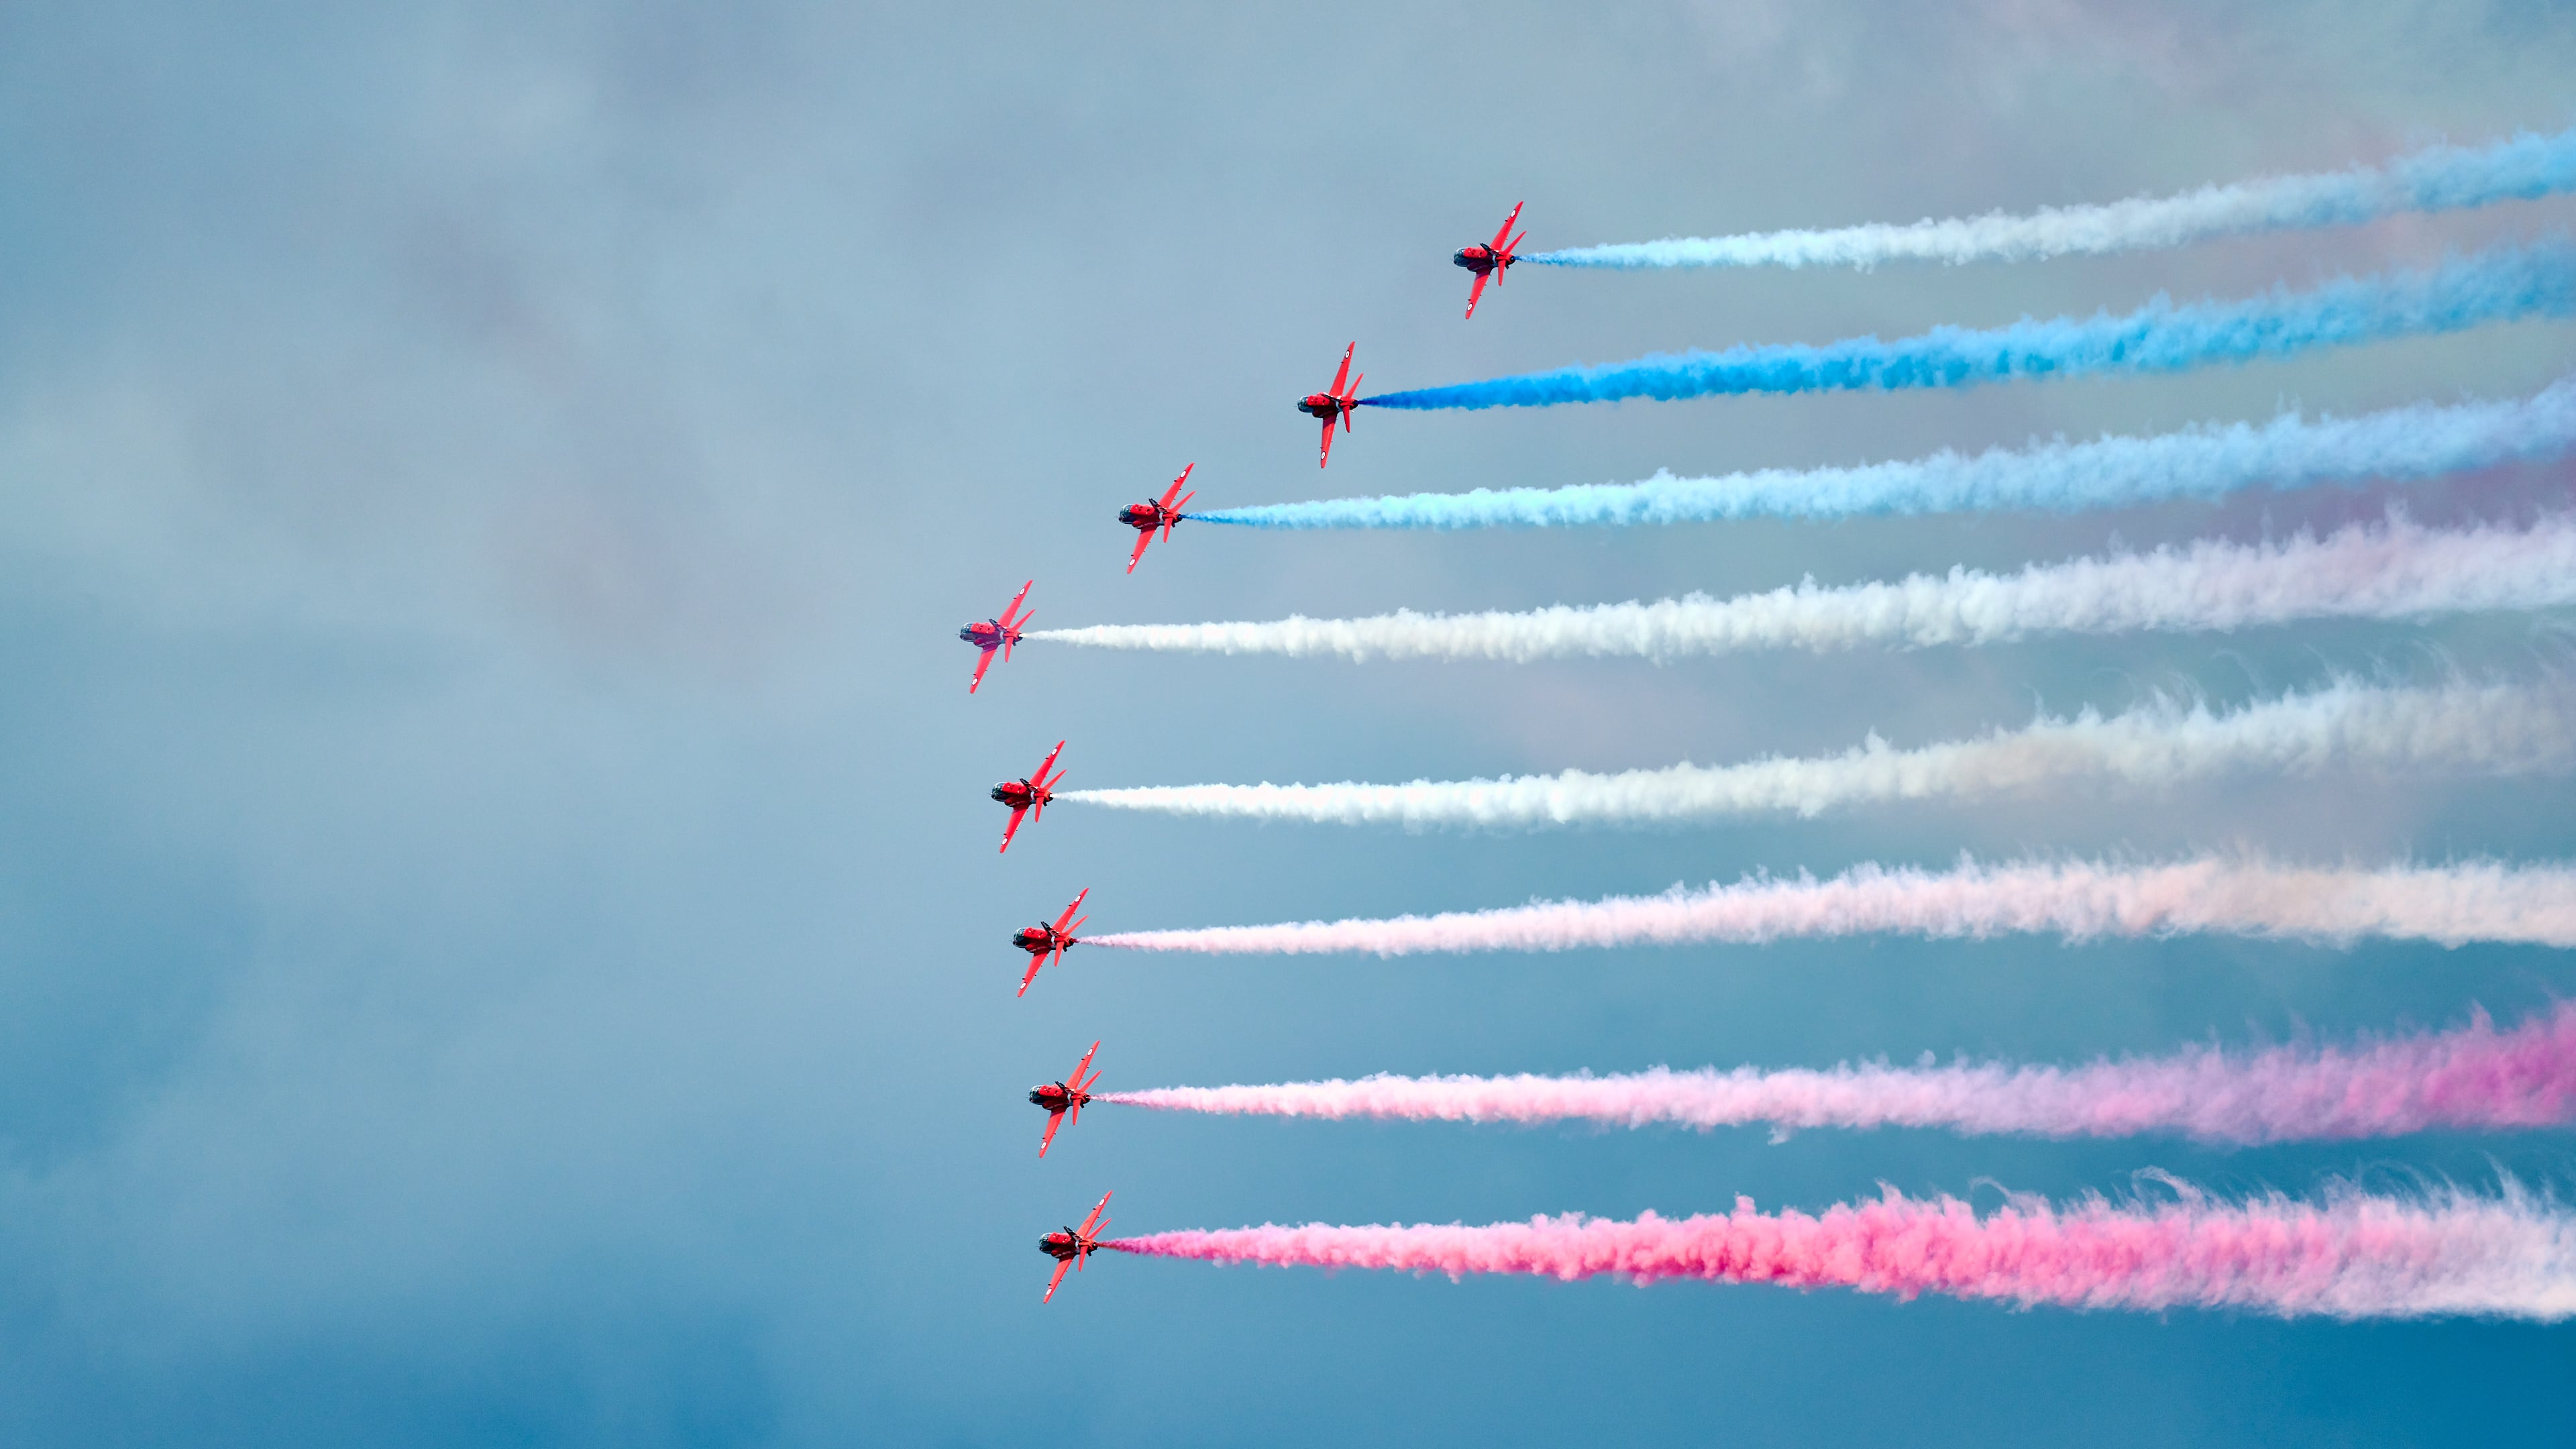 RAF Red Arrows : White and Blue Smoke Side View 2 - #redarrows #redarrowstour